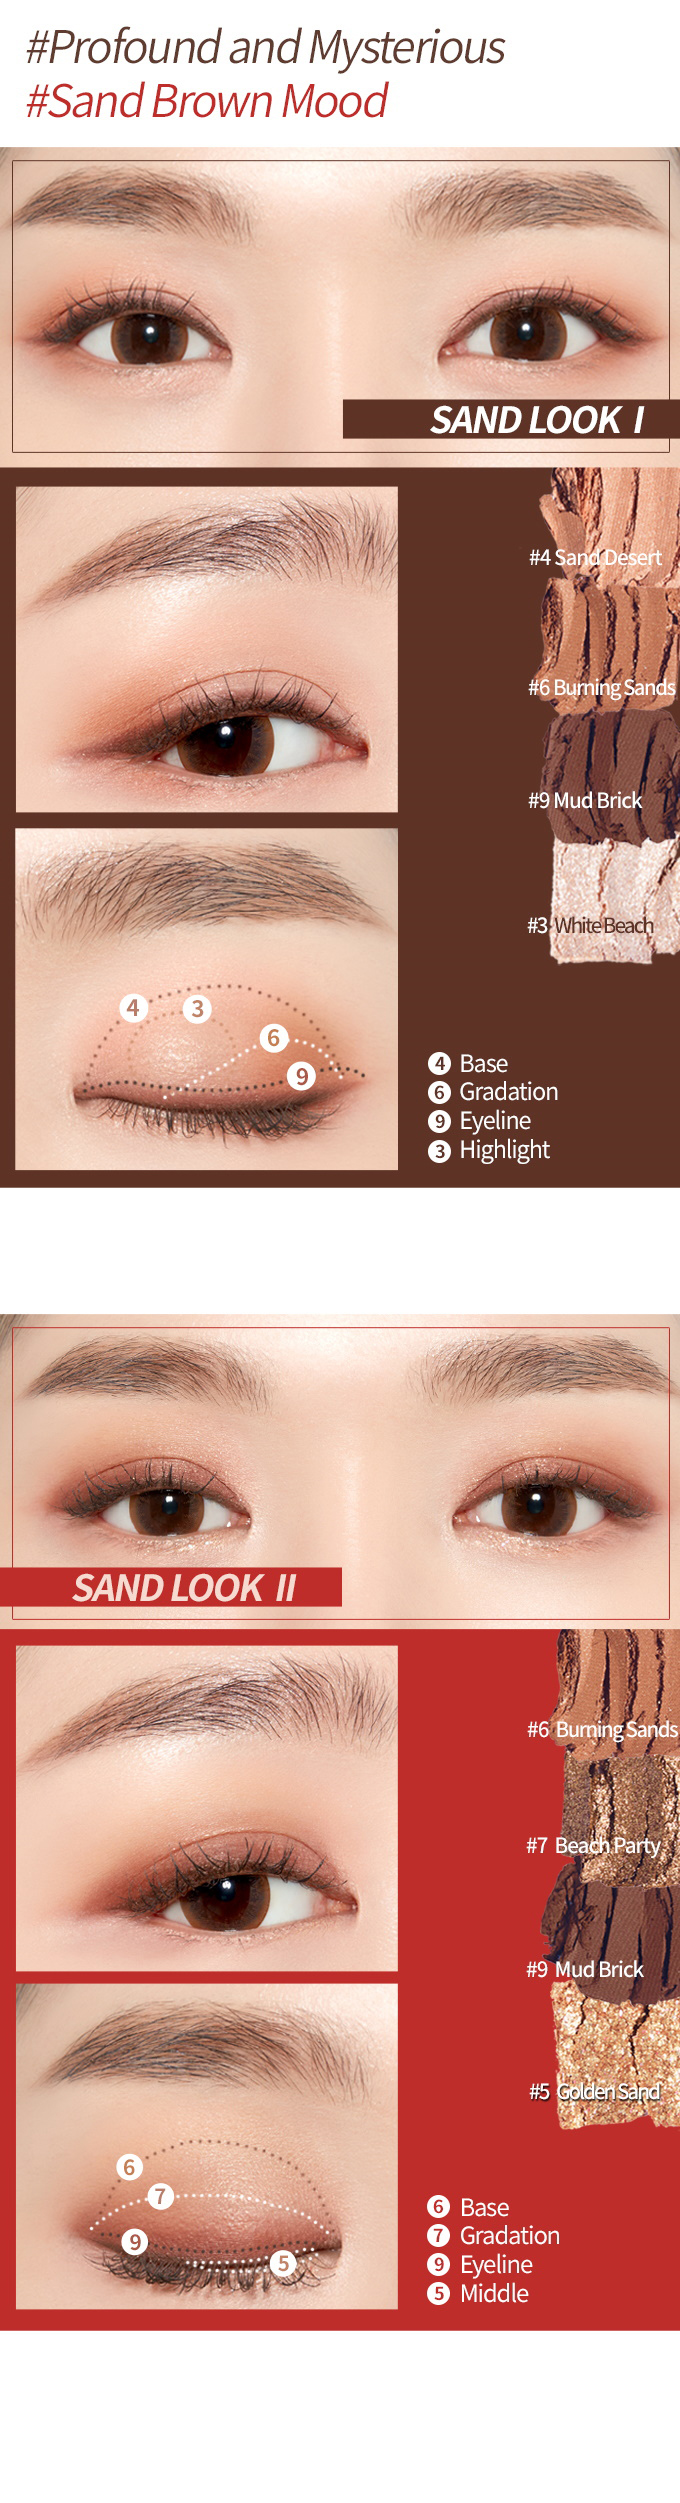 play-color-eyes-sand-hill2.jpg